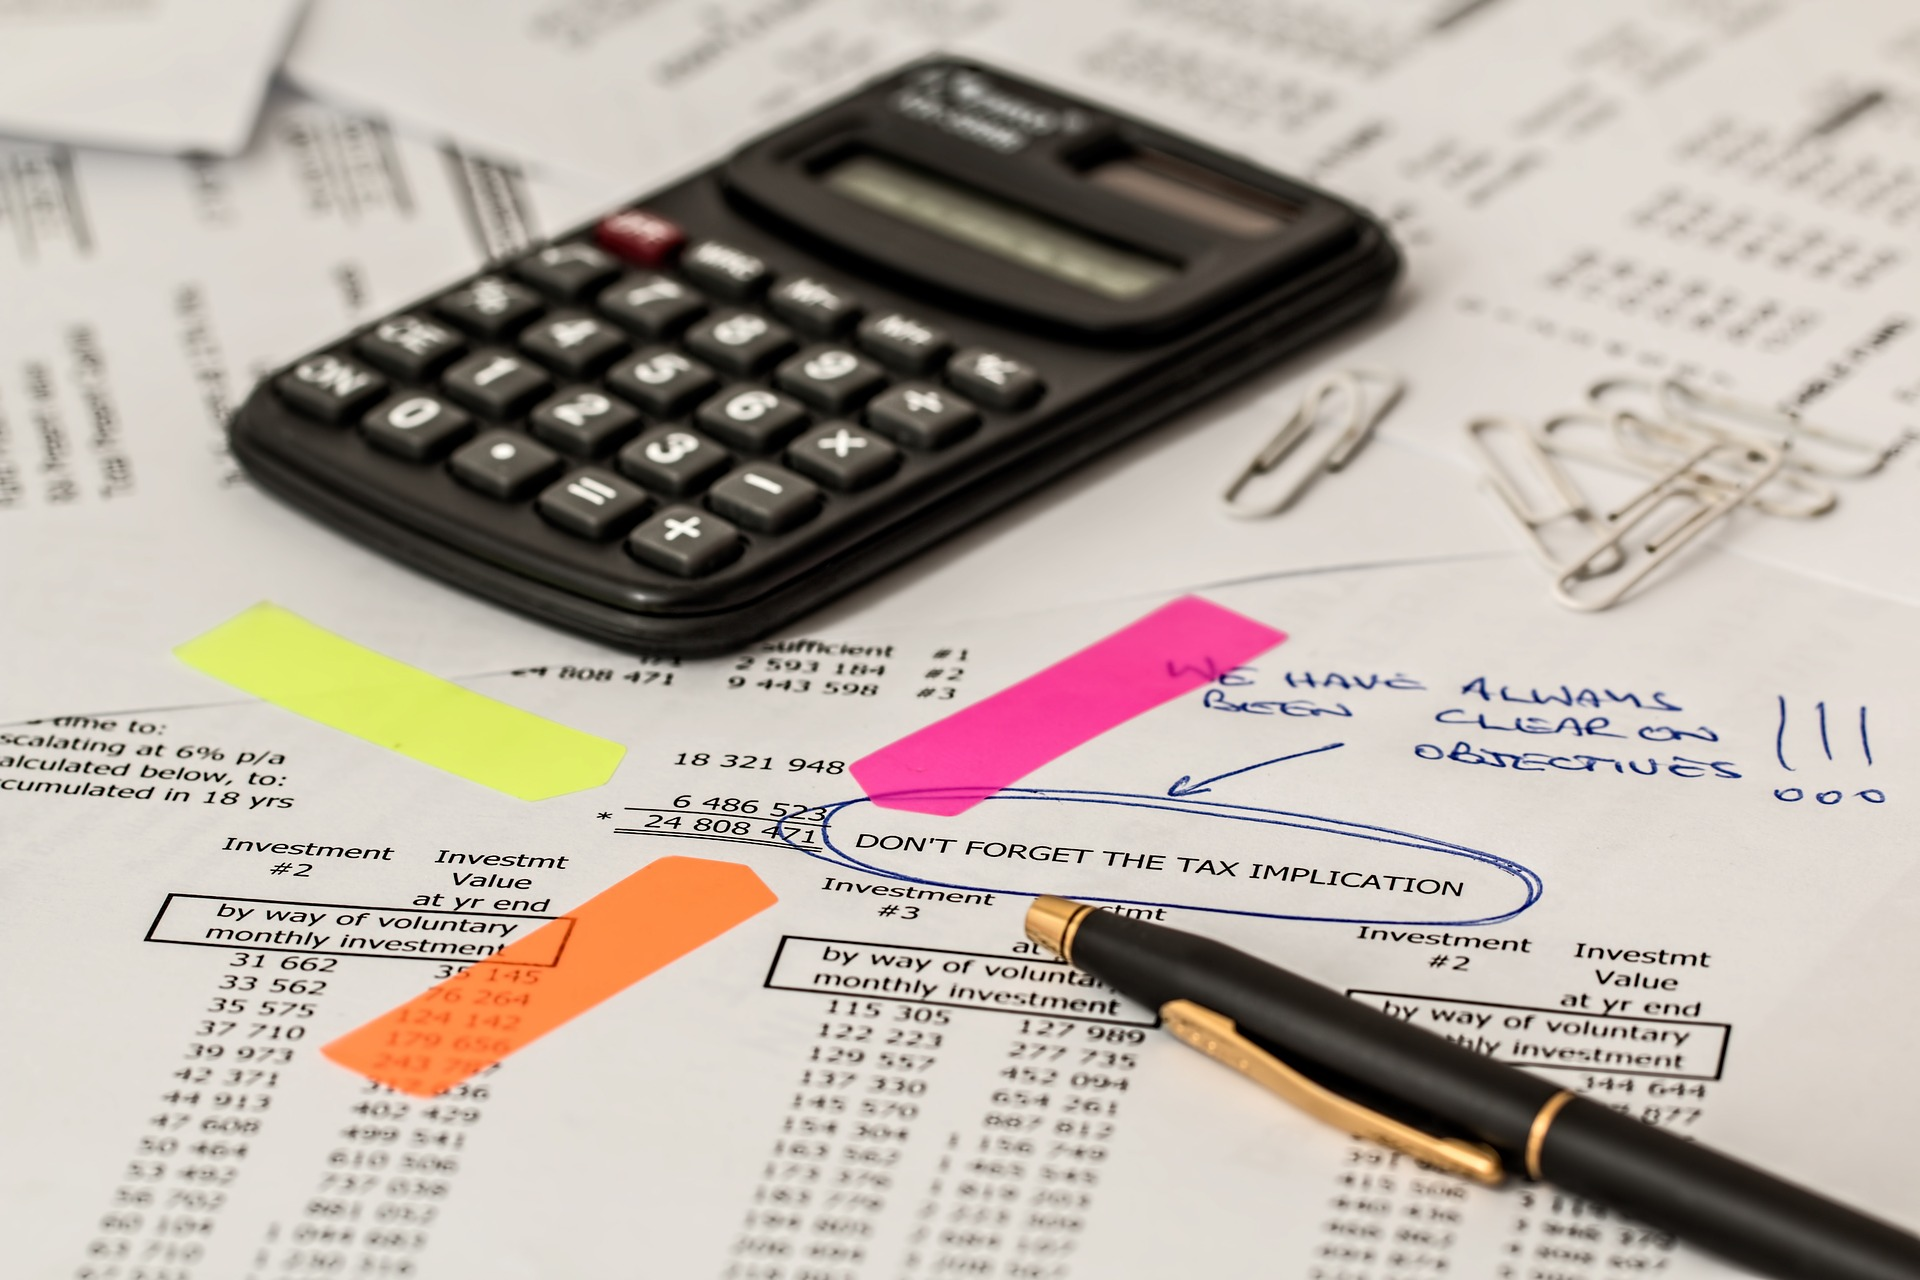 Papers with a calculator and pen. Click here to go to the accounting page.